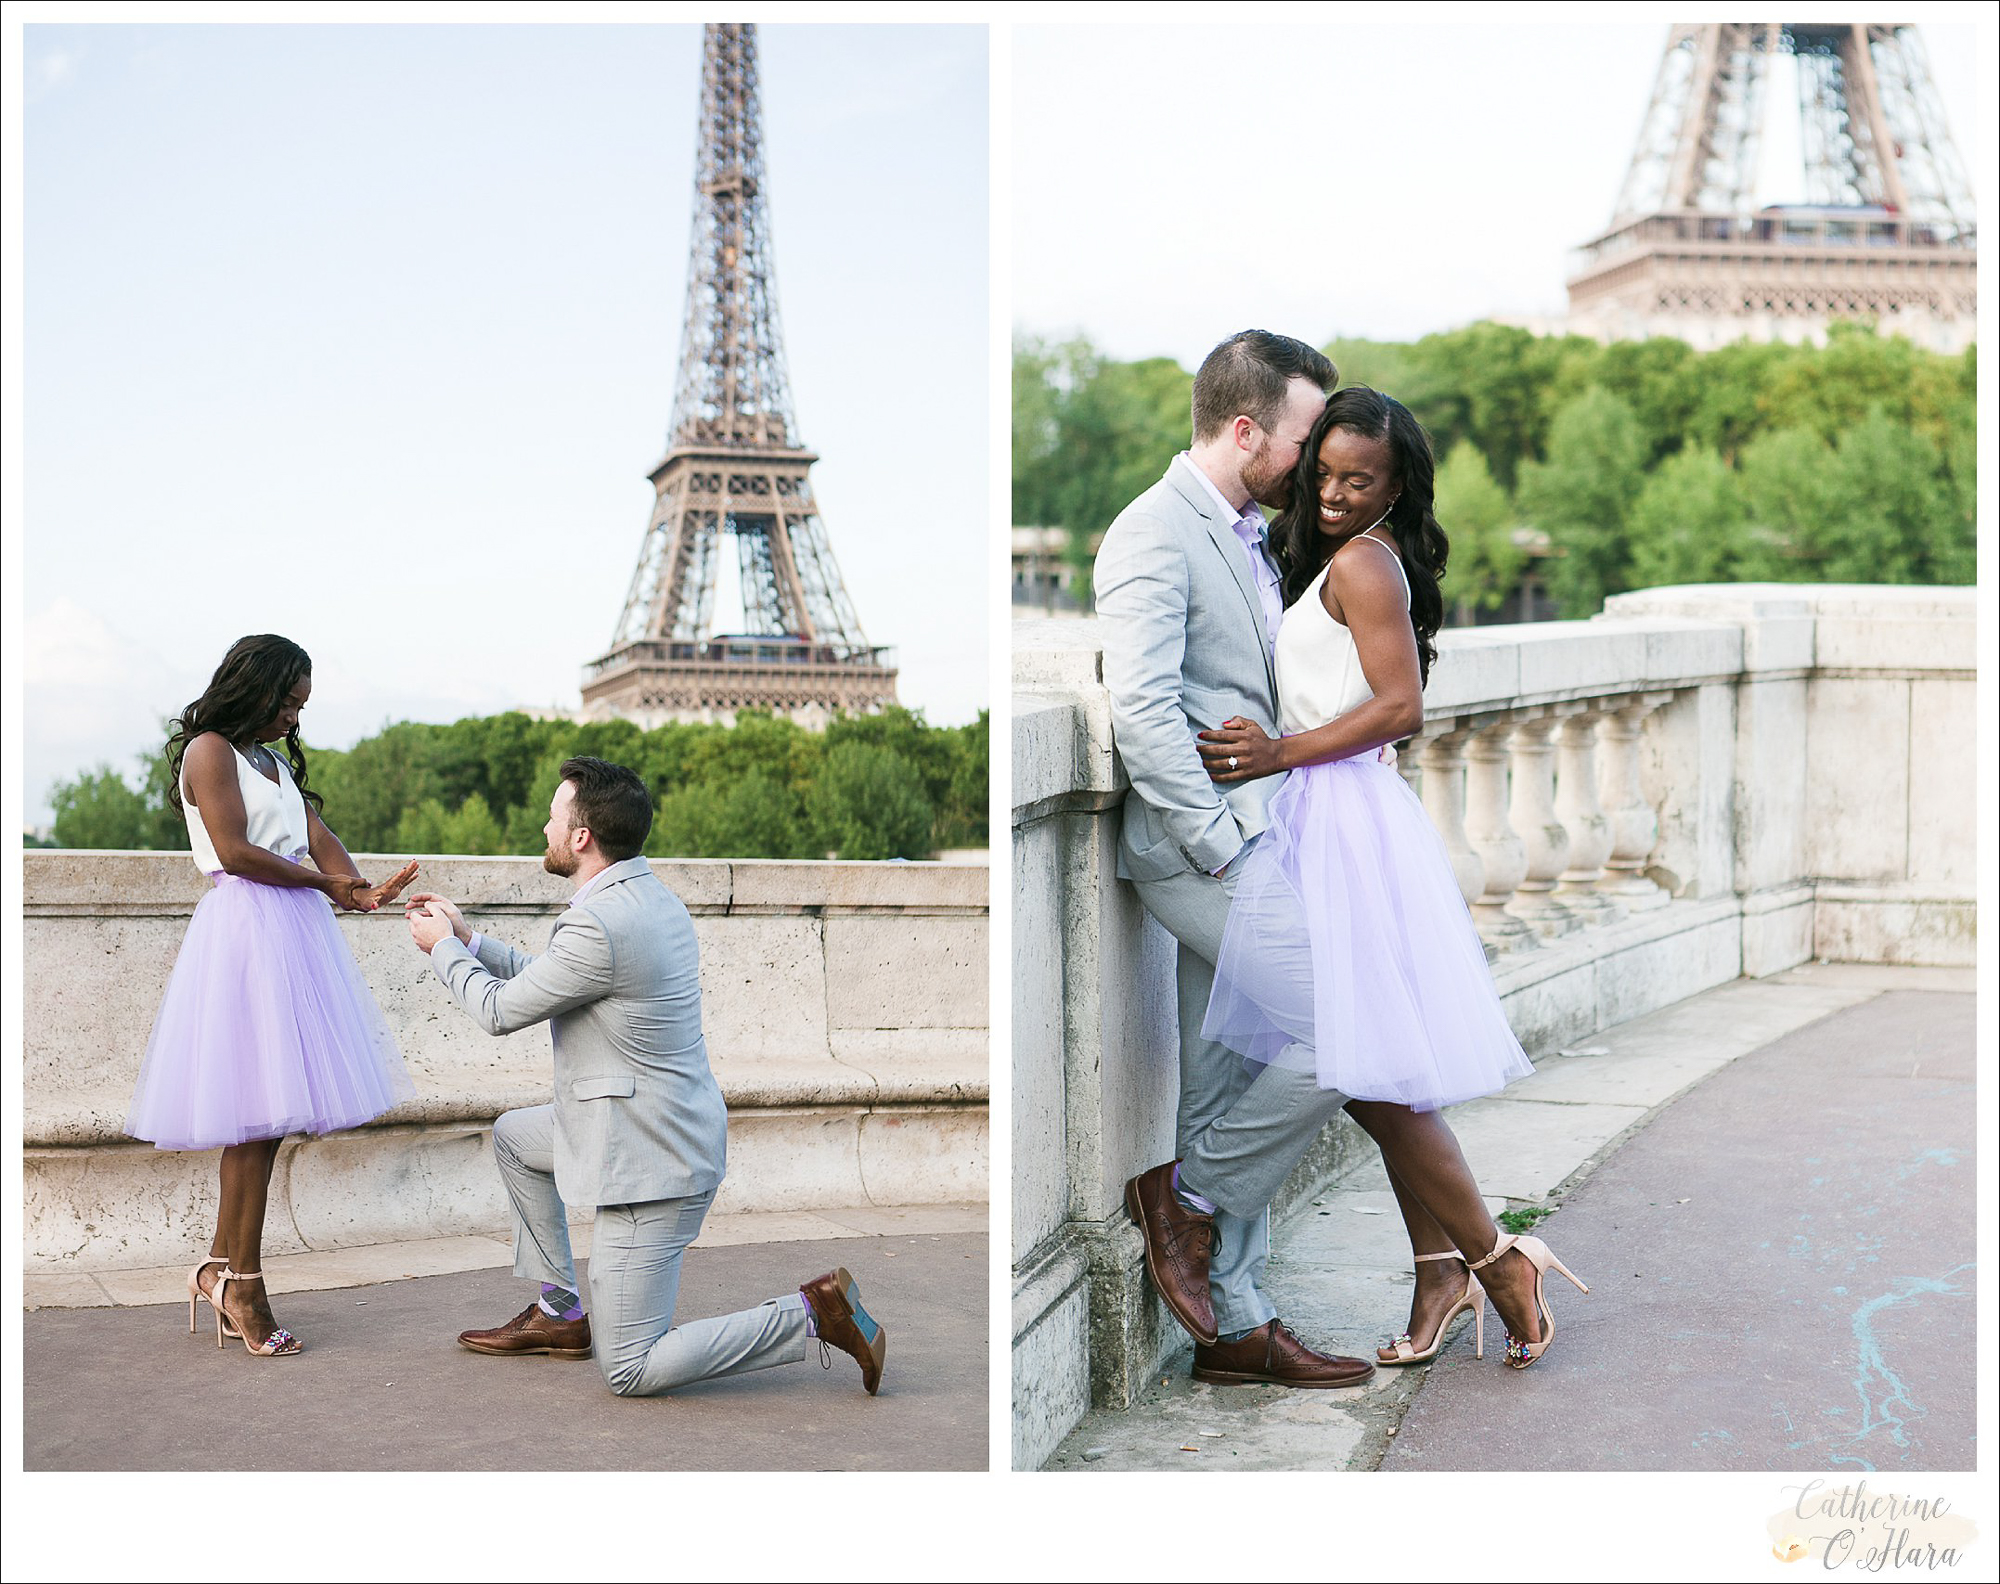 surprise proposal engagement photographer paris france-18.jpg